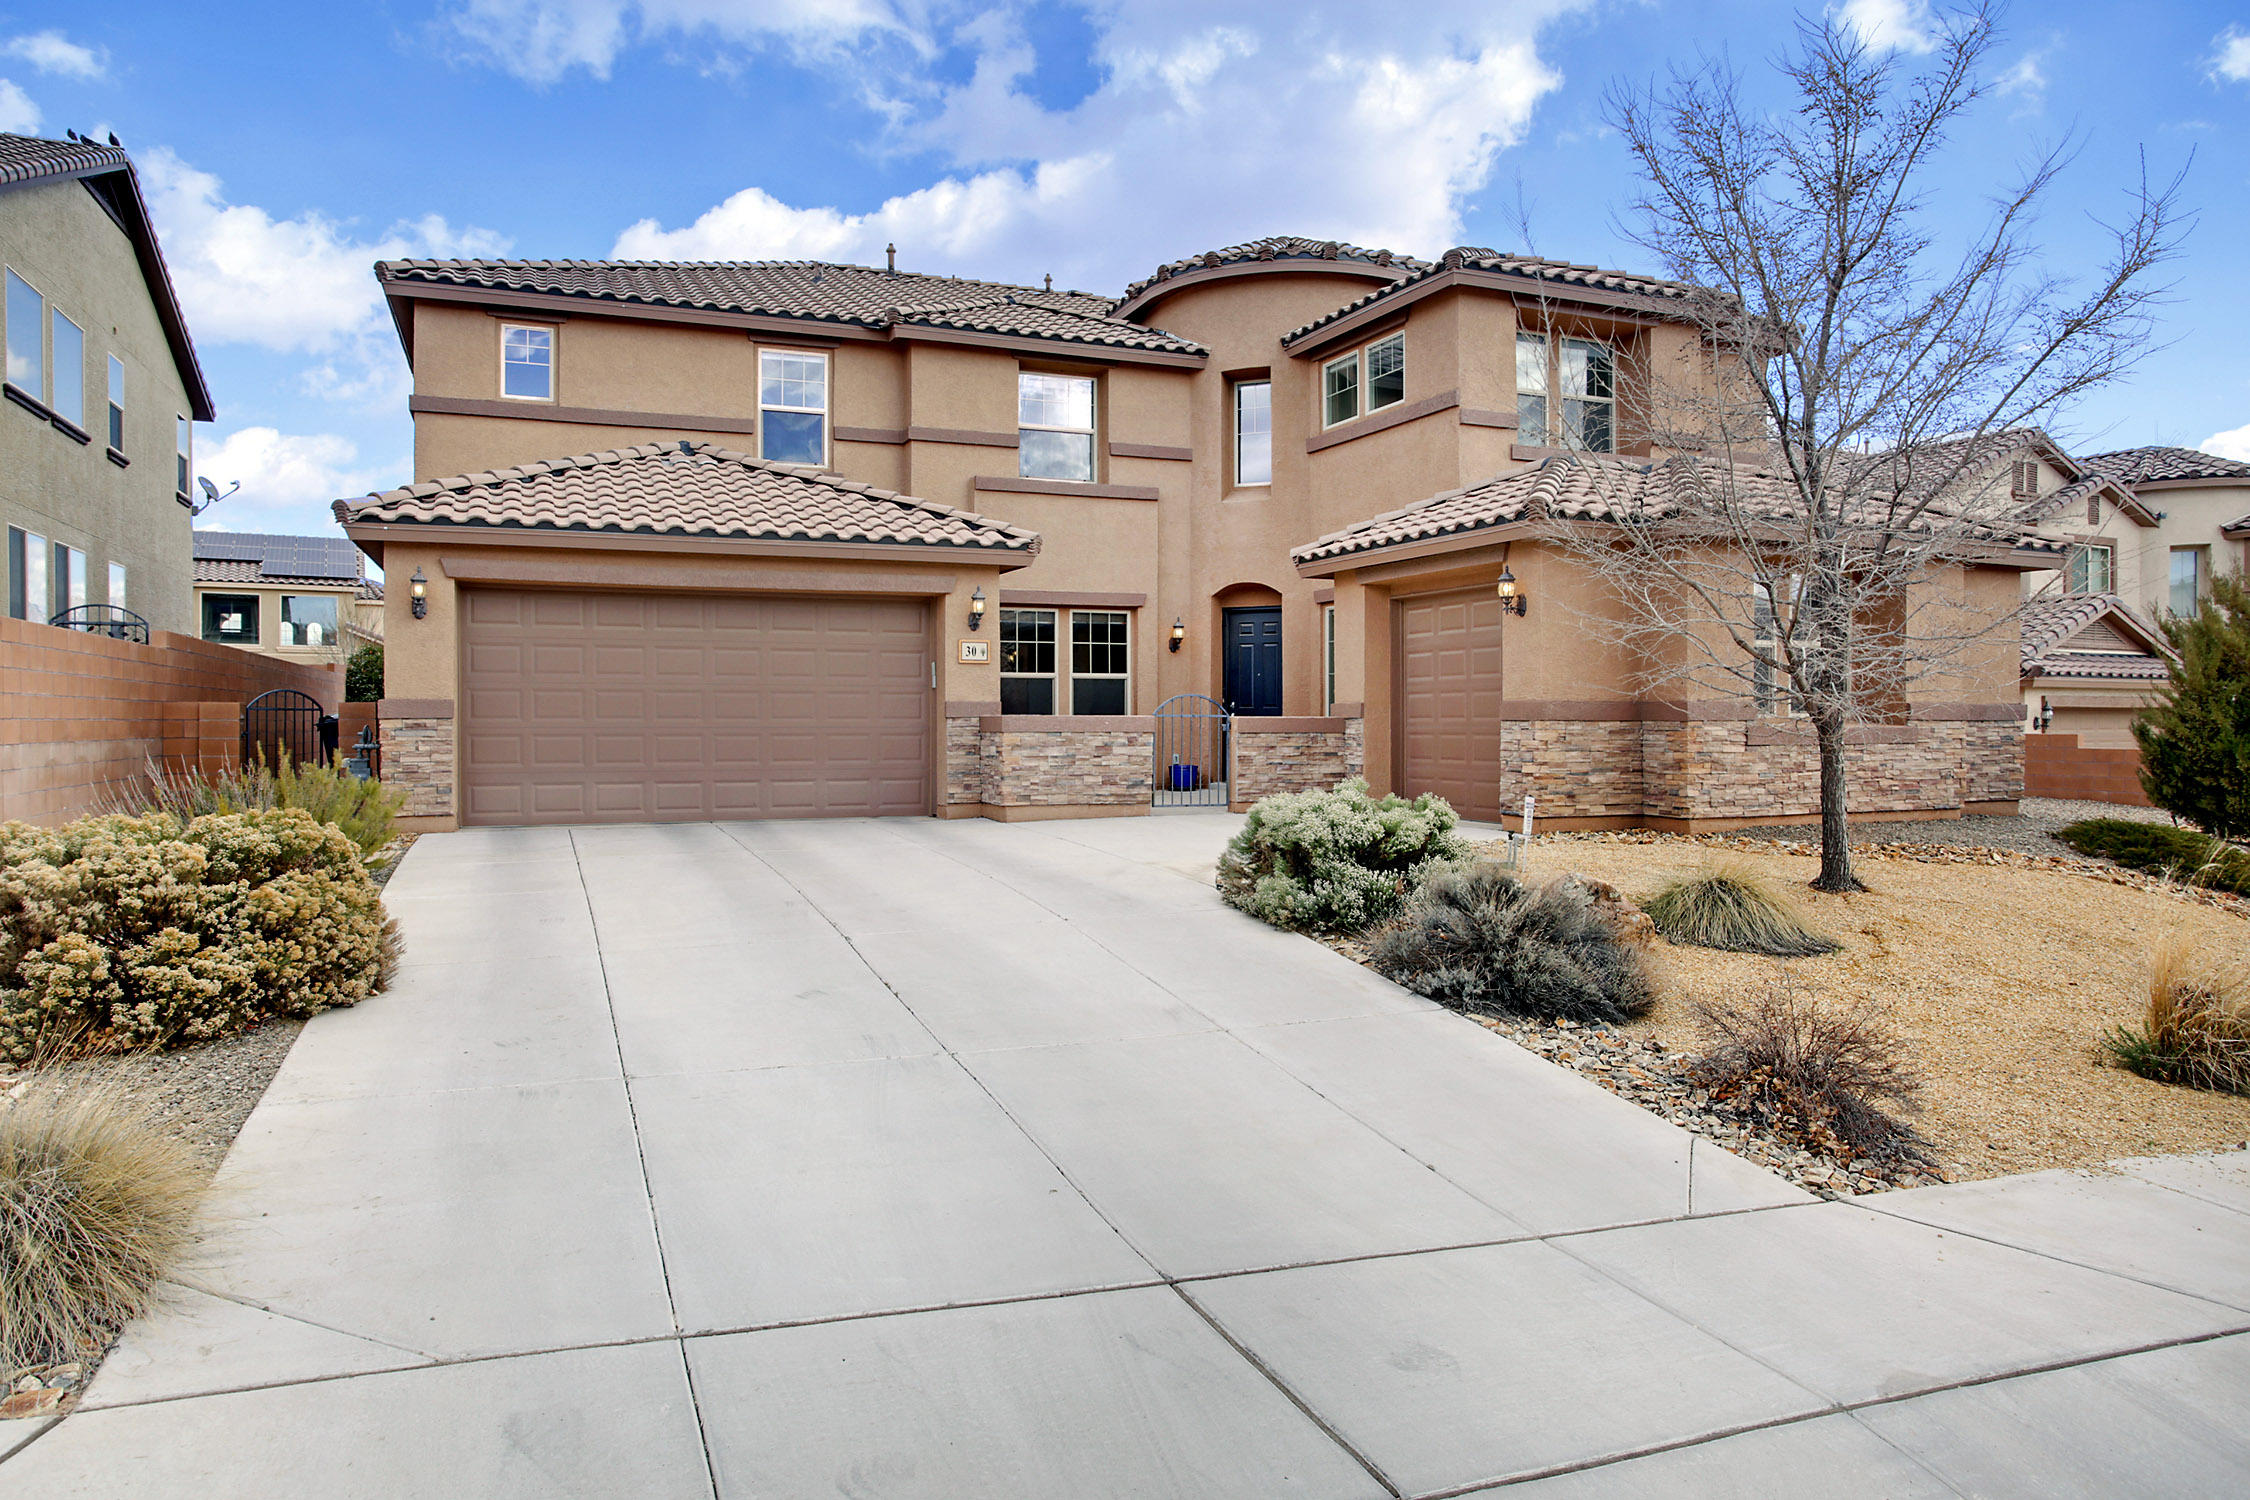 Welcome to this meticulously upgraded, gorgeous home in Loma Colorado. Pride of ownership in these immaculate upgrades, everything from the engineered hardwood floors to the state-of-the-art Kitchen Aid appliances. The beautiful, sweeping, open staircase lands you at the open loft, perfect for a 2nd or 3rd living space. First and second story Owner Suites or main level In-Law Suite. Upstairs owner suite w/balcony boasting those iconic and beautiful mountain views. Ease of living with this landscaped and auto-bubble drip yard. There wasn't a detail missed on this gorgeous home! Please contact Listing Broker to show while cancelled. Home will be officially back on the market early summer